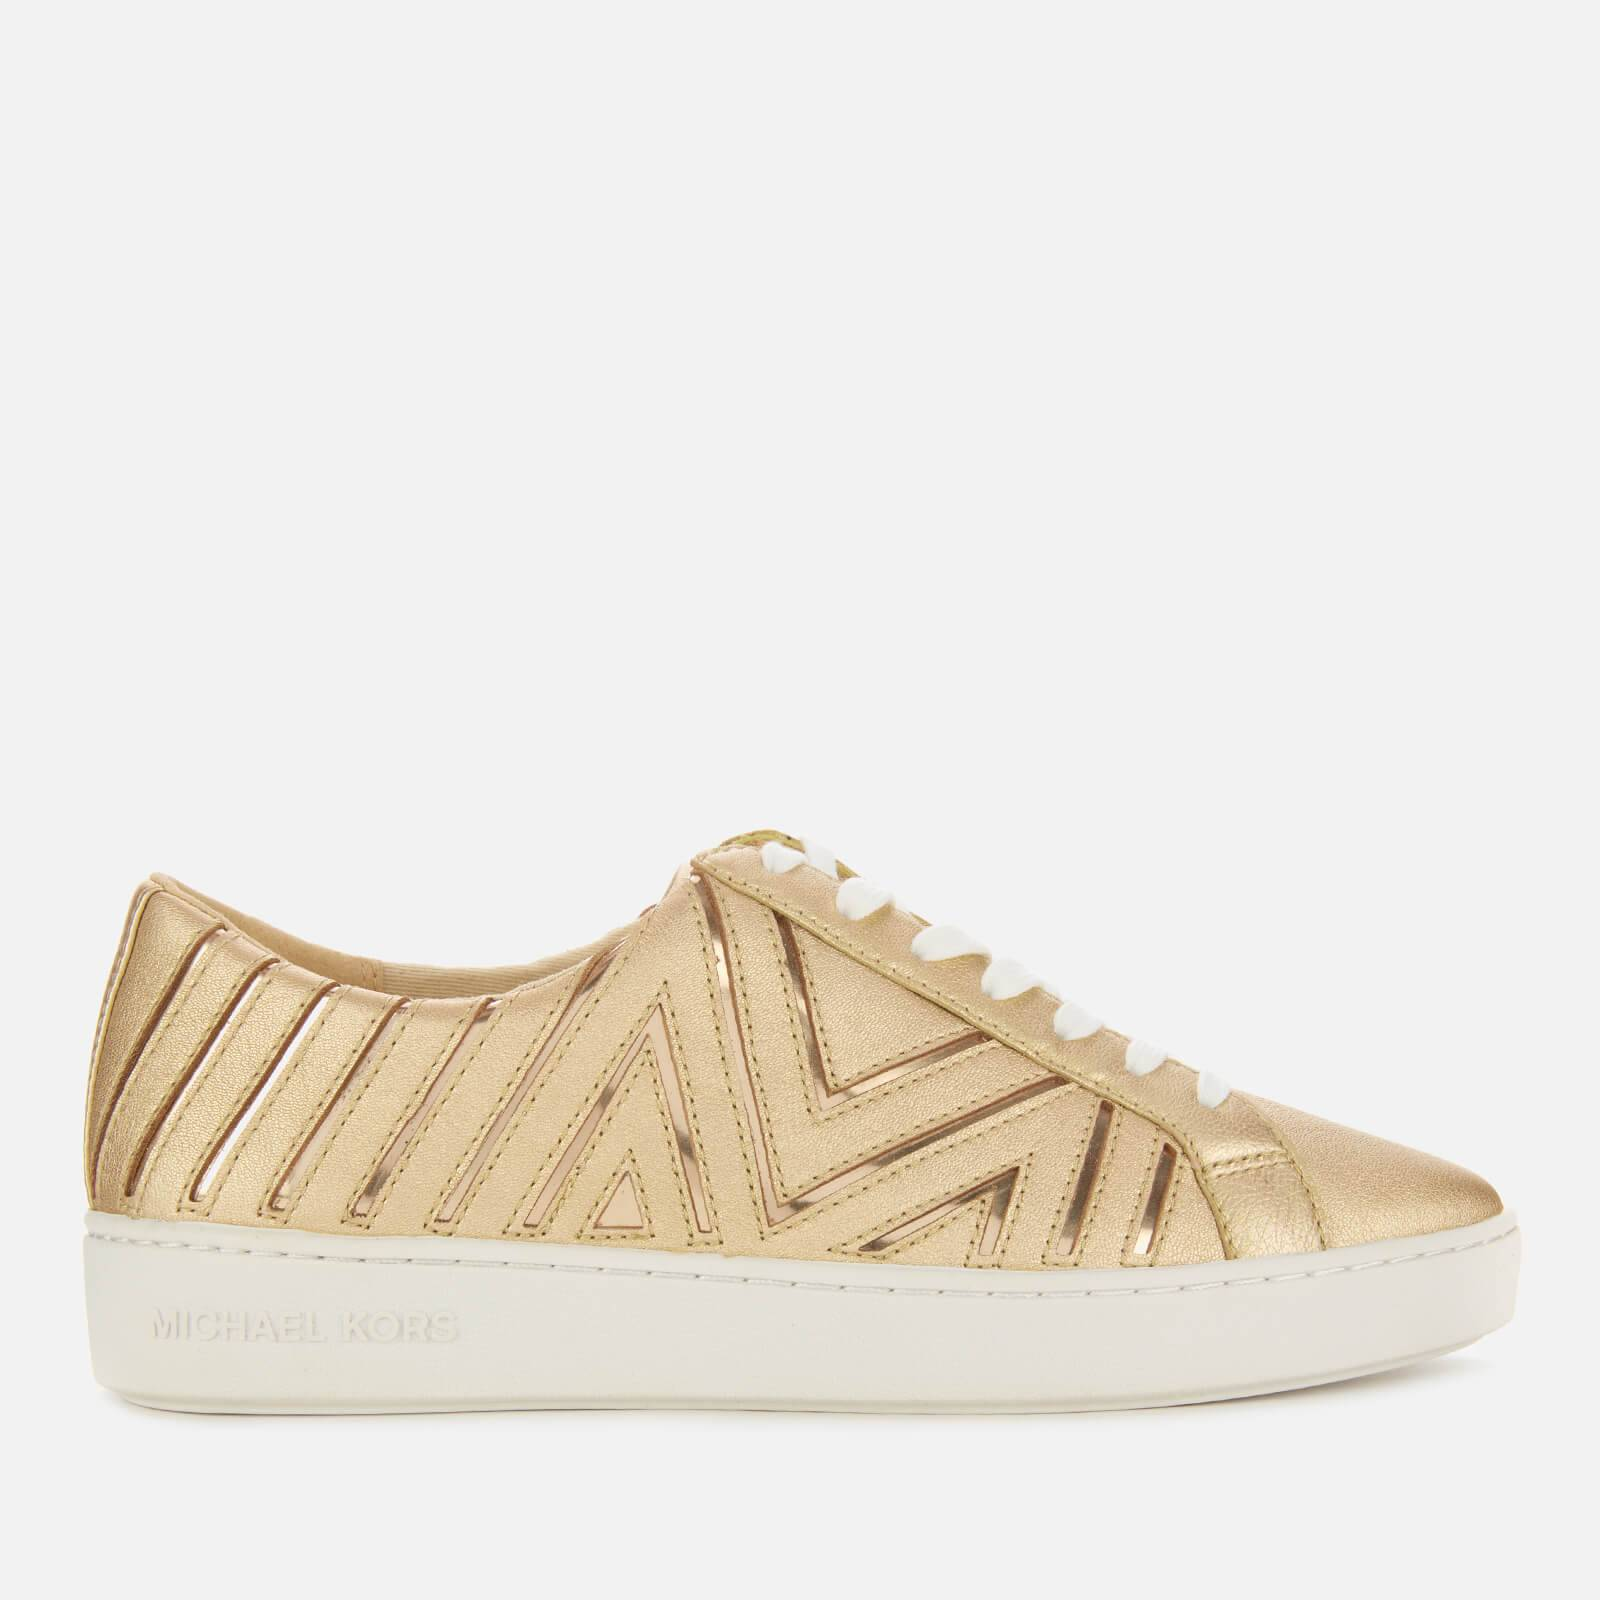 MICHAEL MICHAEL KORS Women's Whitney Low Top Trainers - Pale Gold - UK 4/US 7